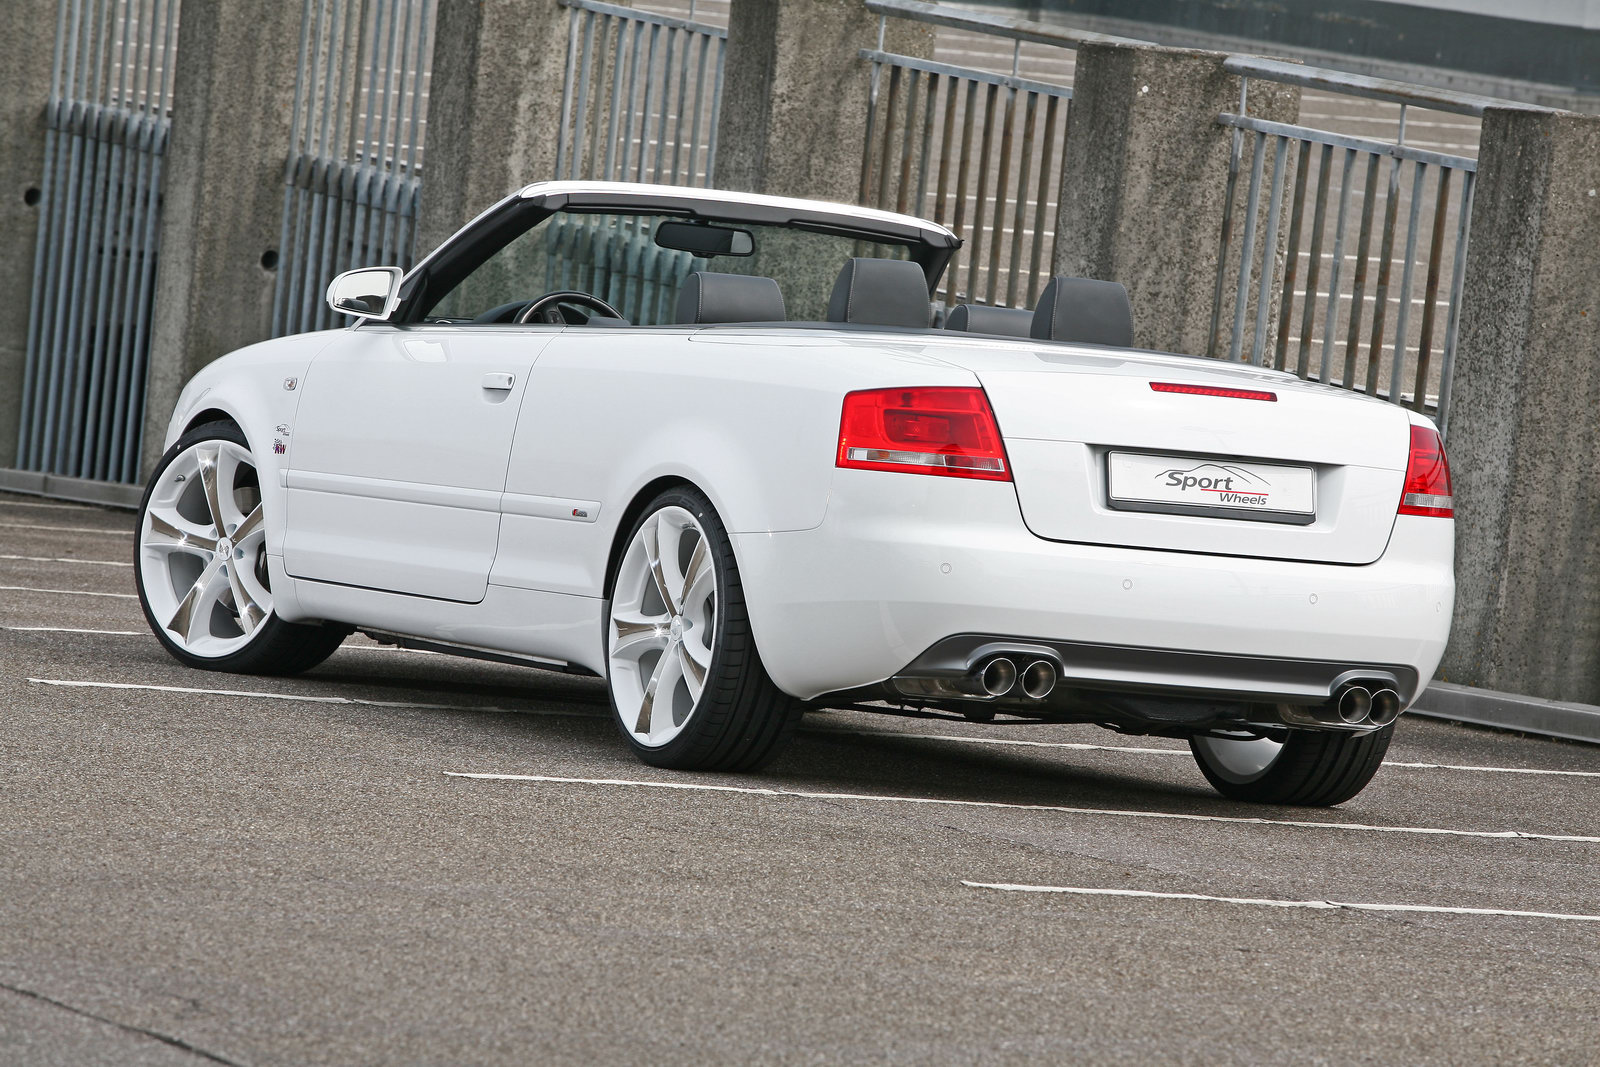 Audi A4 Cabriolet 2 Audi A4 2.0 TFSI Convertible Tuned by SportWheels